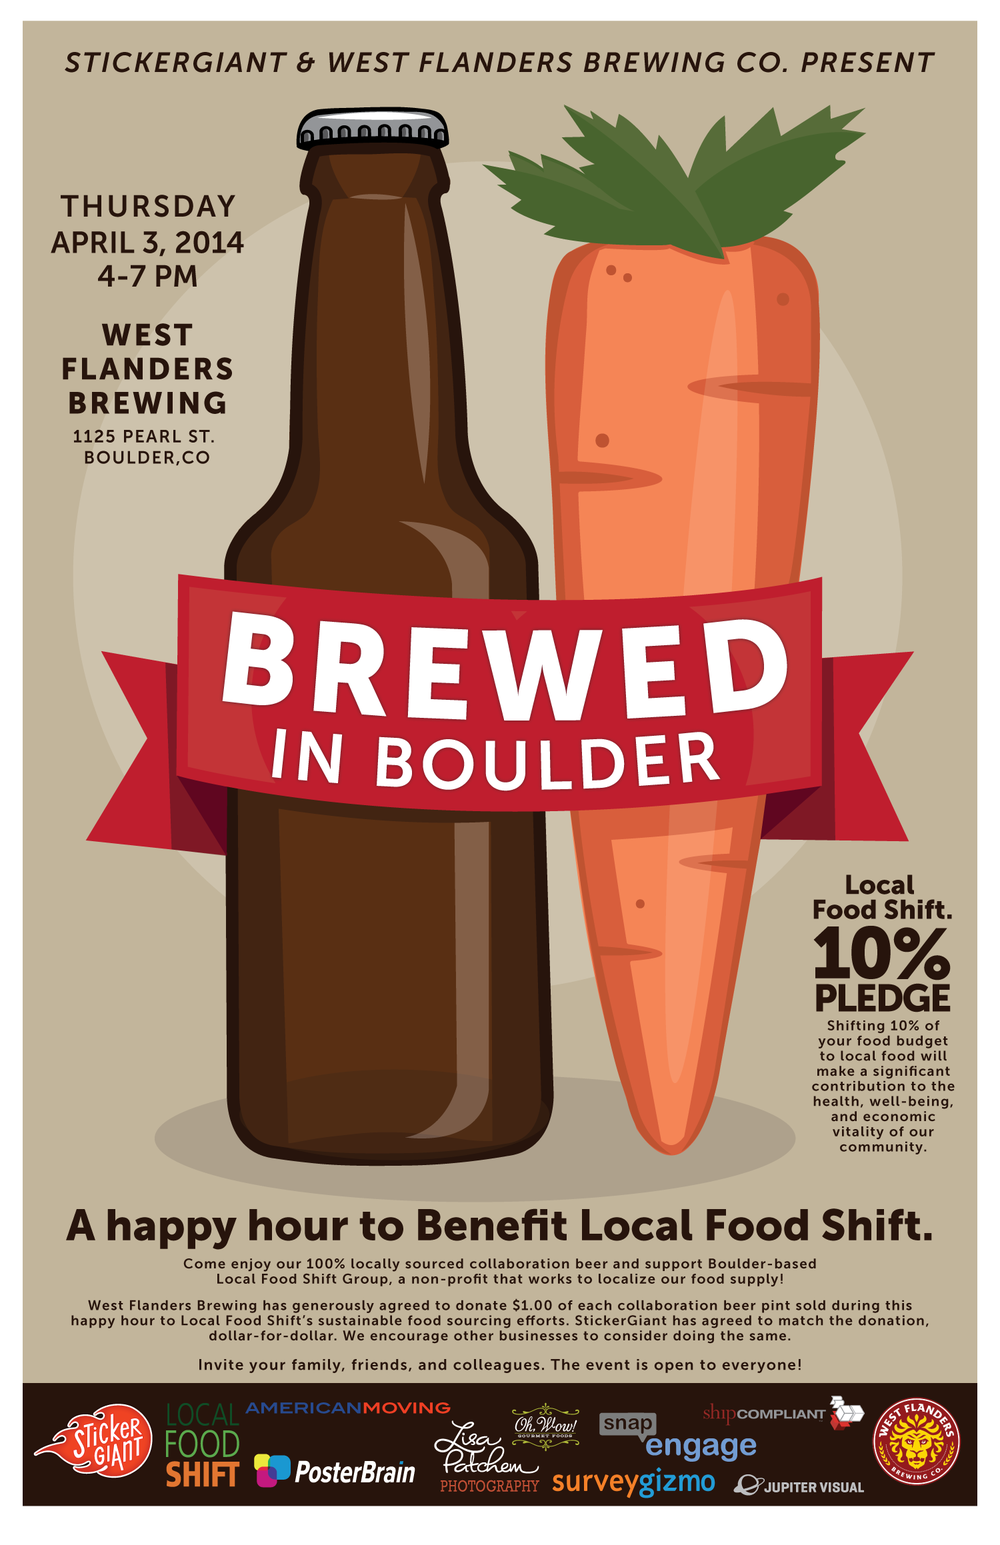 Custom sticker sheet illustration and design for  Brewed in Boulder  event